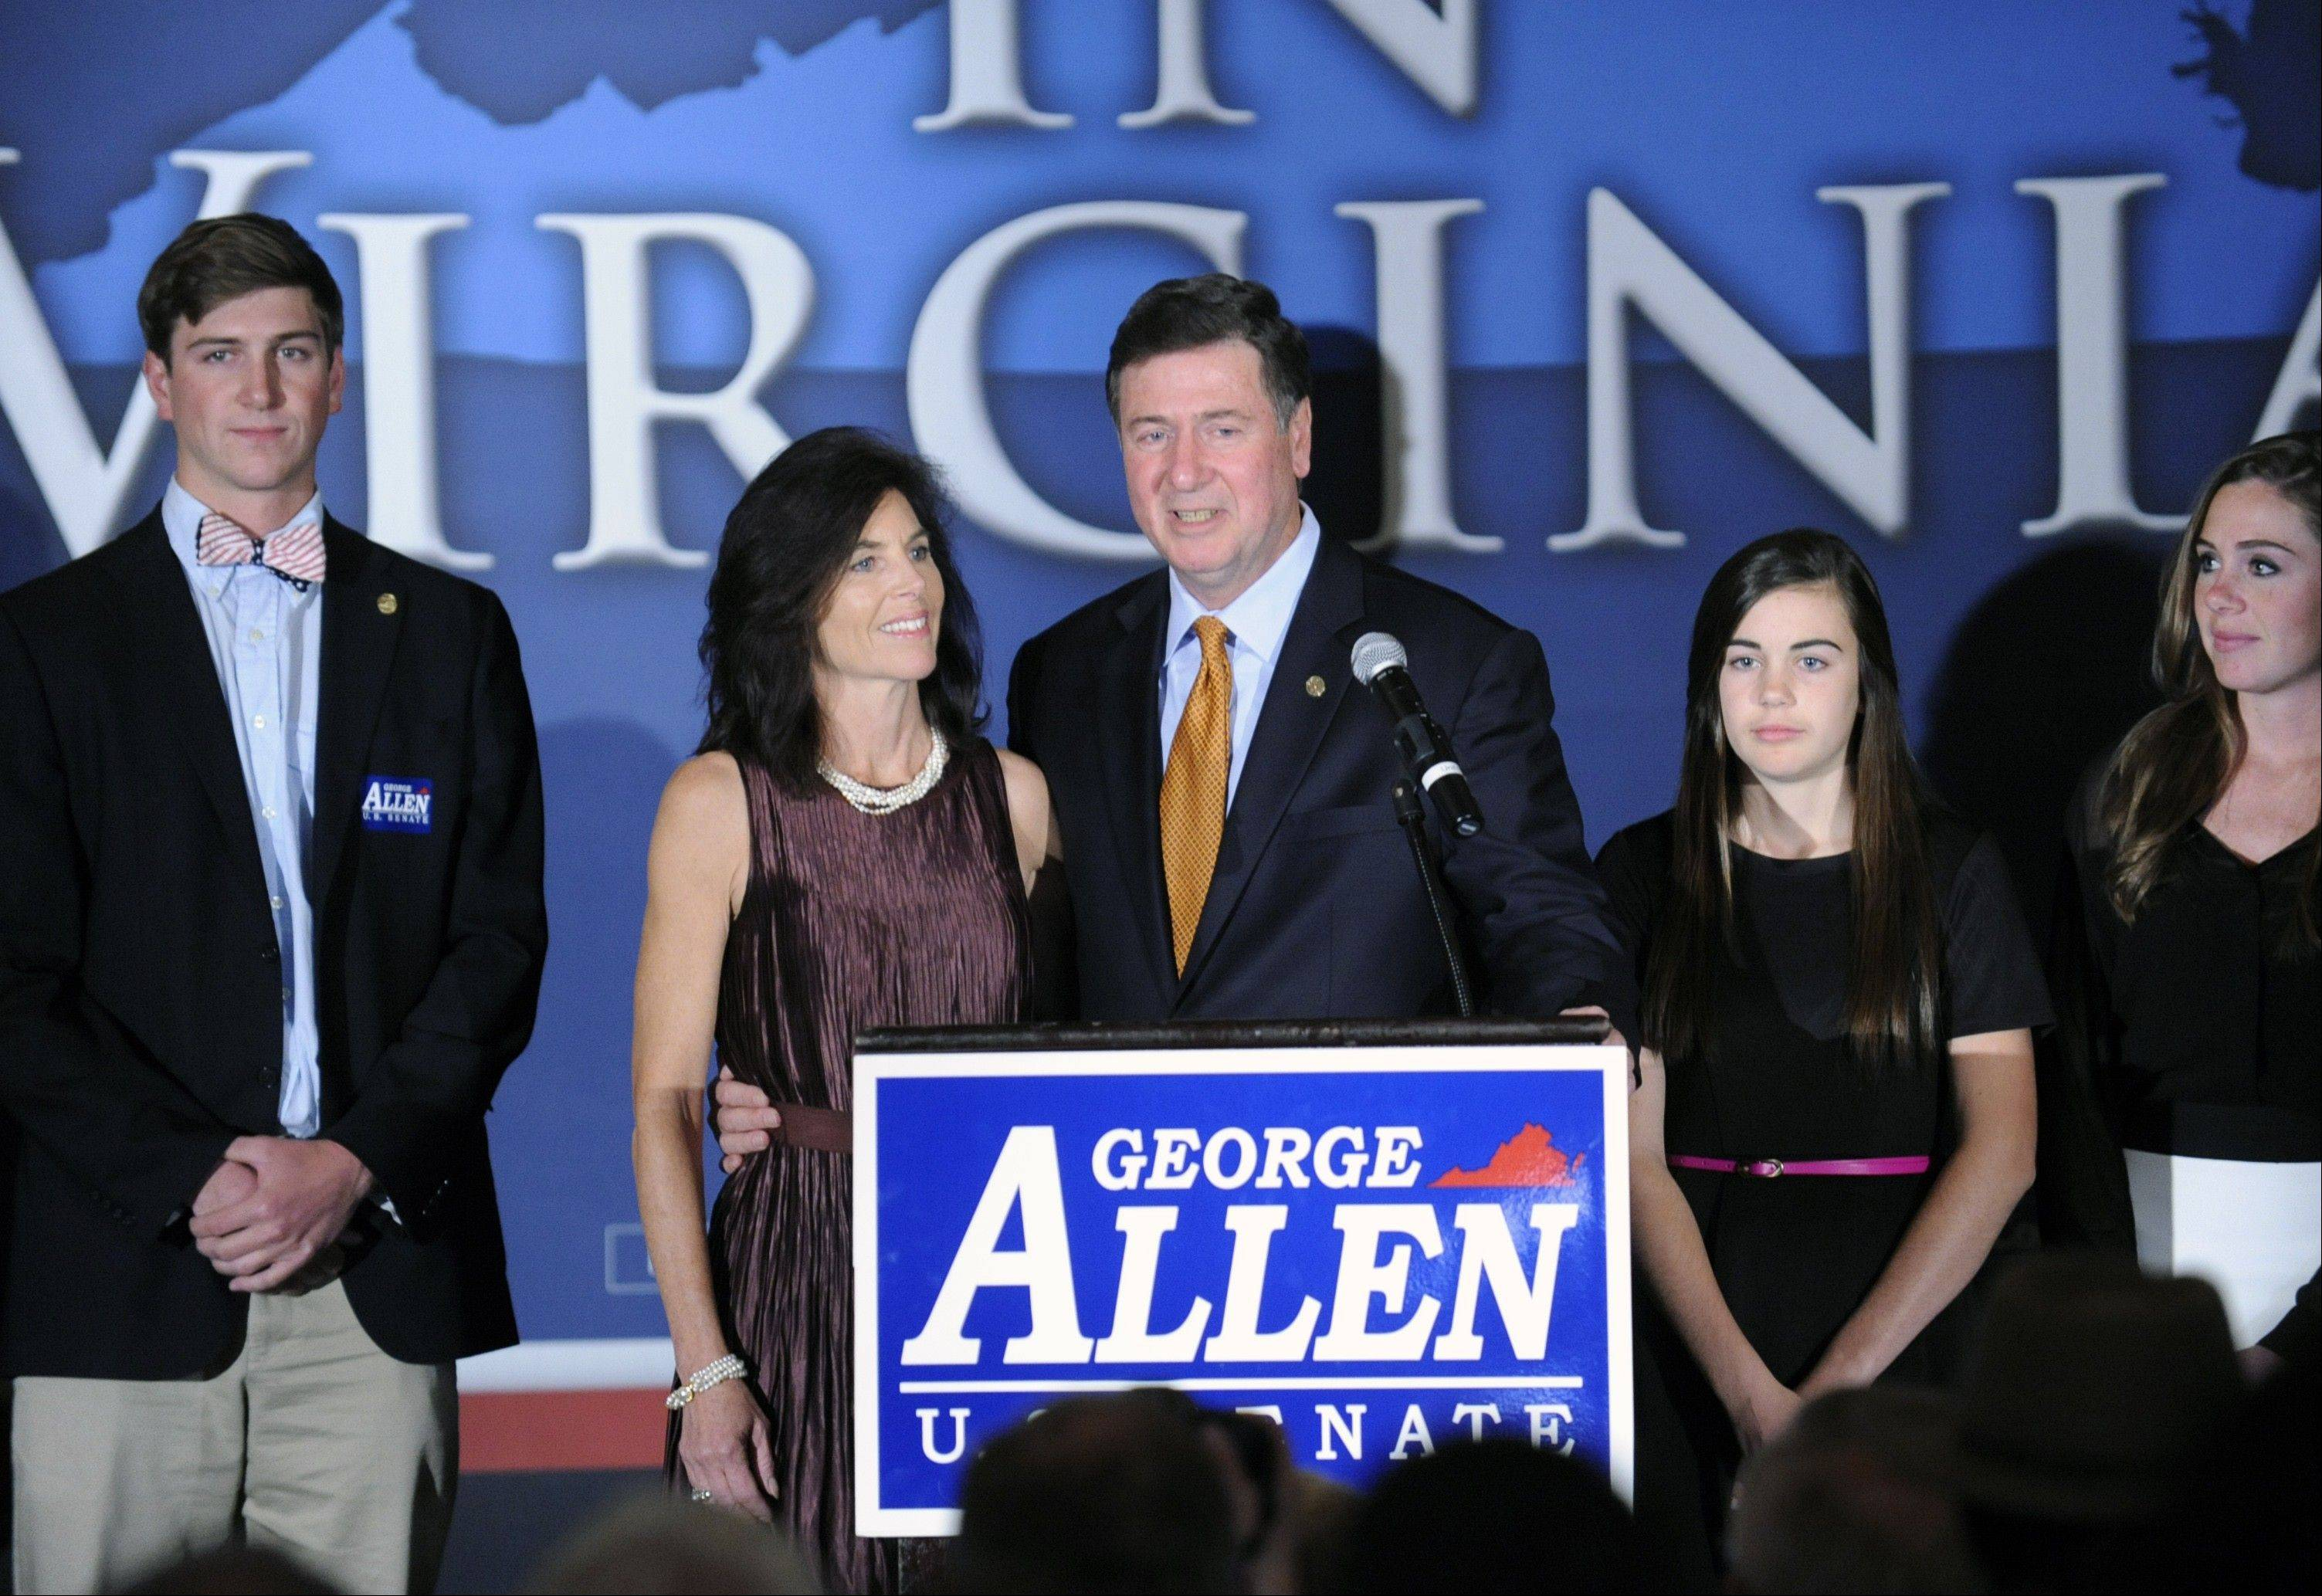 George Allen, with his family at his side, addresses supporters after conceding at the Republican Party of Virginia post election event at the Omni Hotel in Richmond, Va.